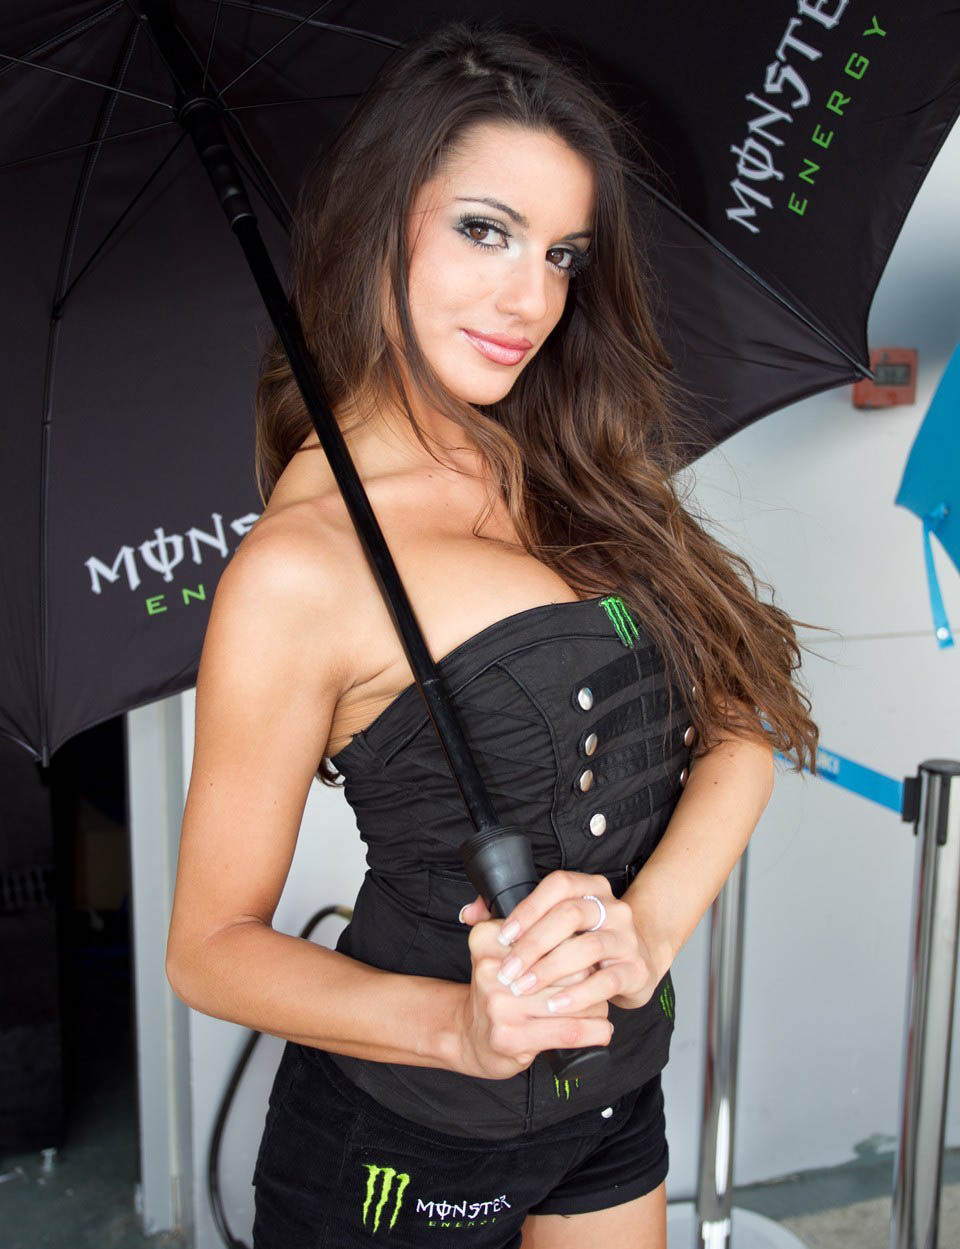 Umbrella Girl Motogp 2011